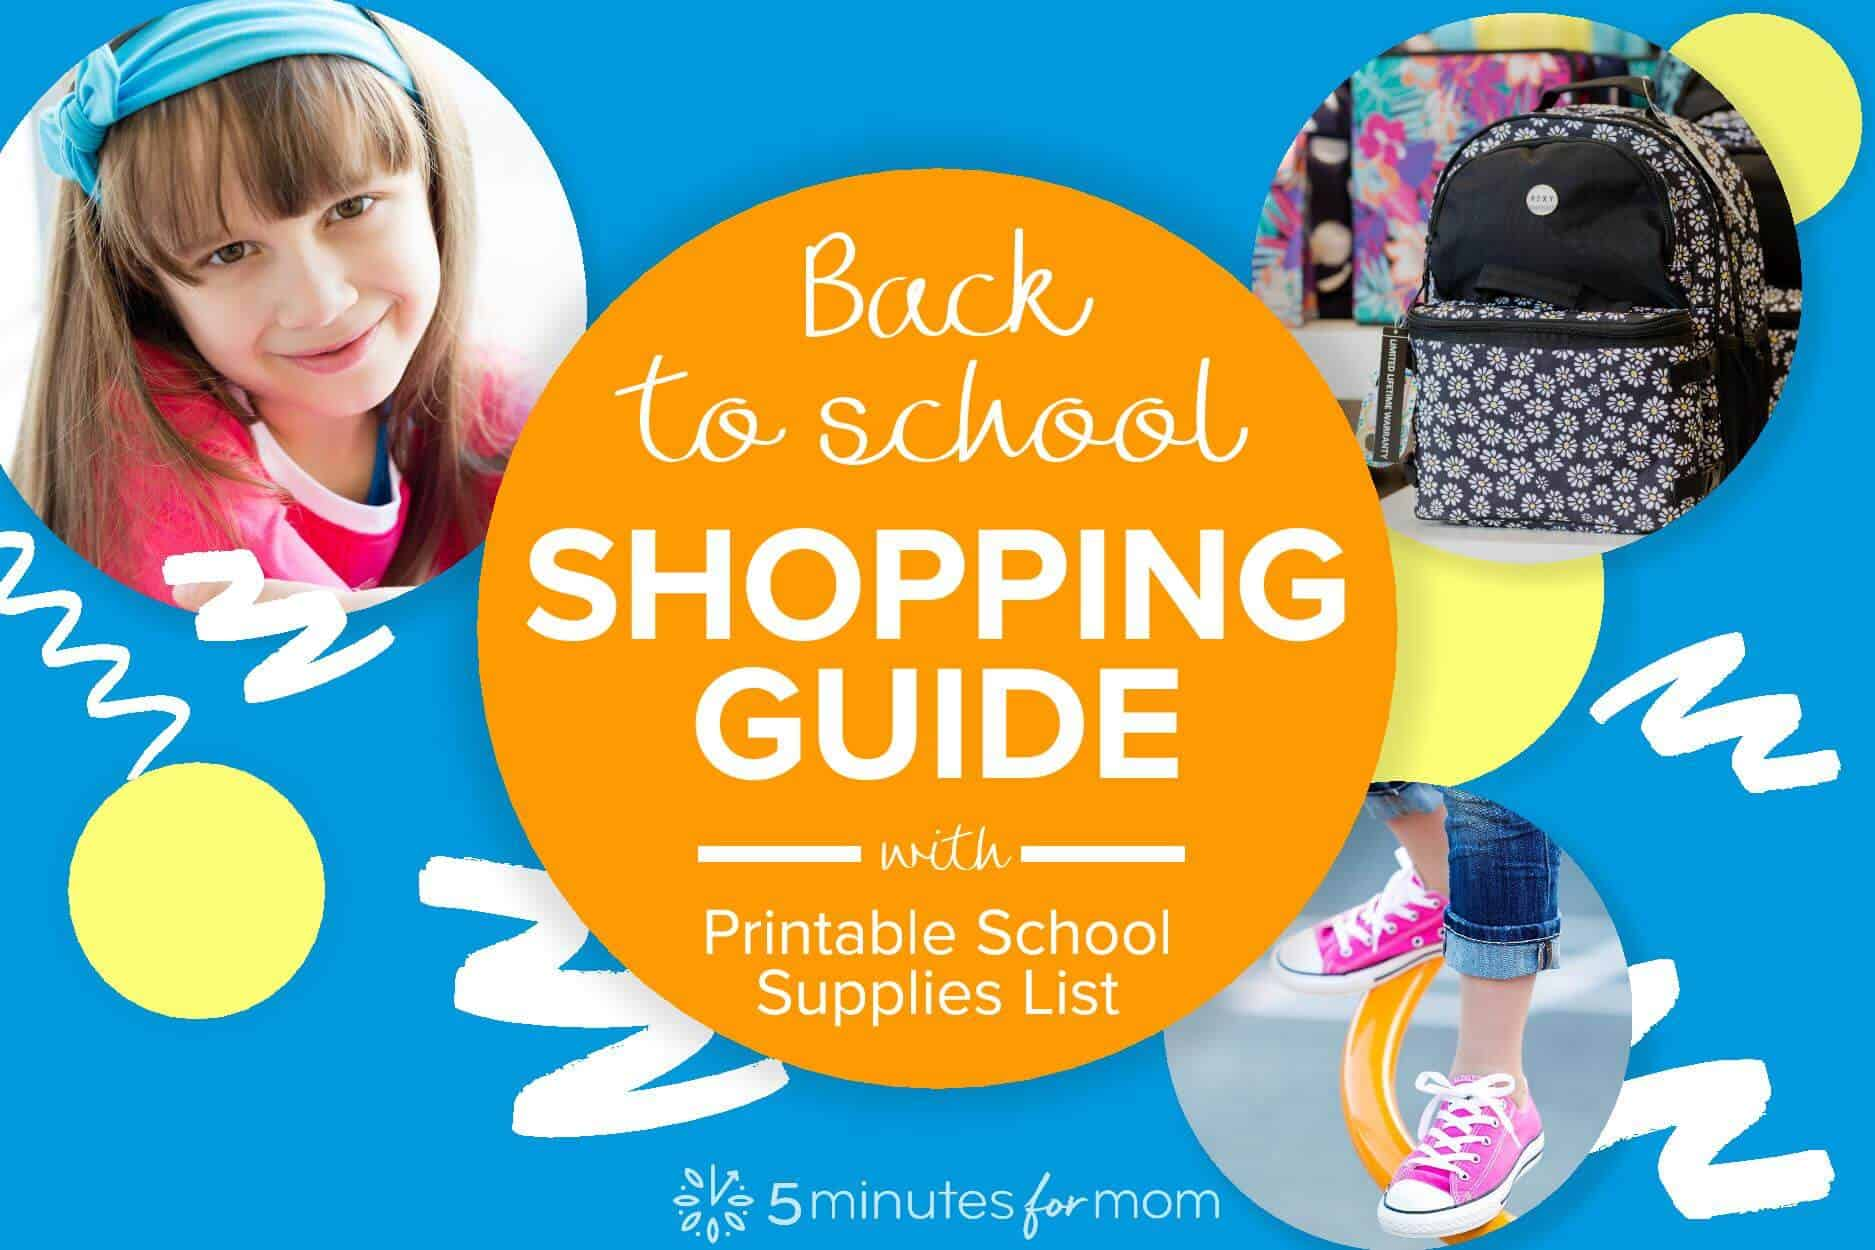 School Supplies Lists and Back to School Shopping